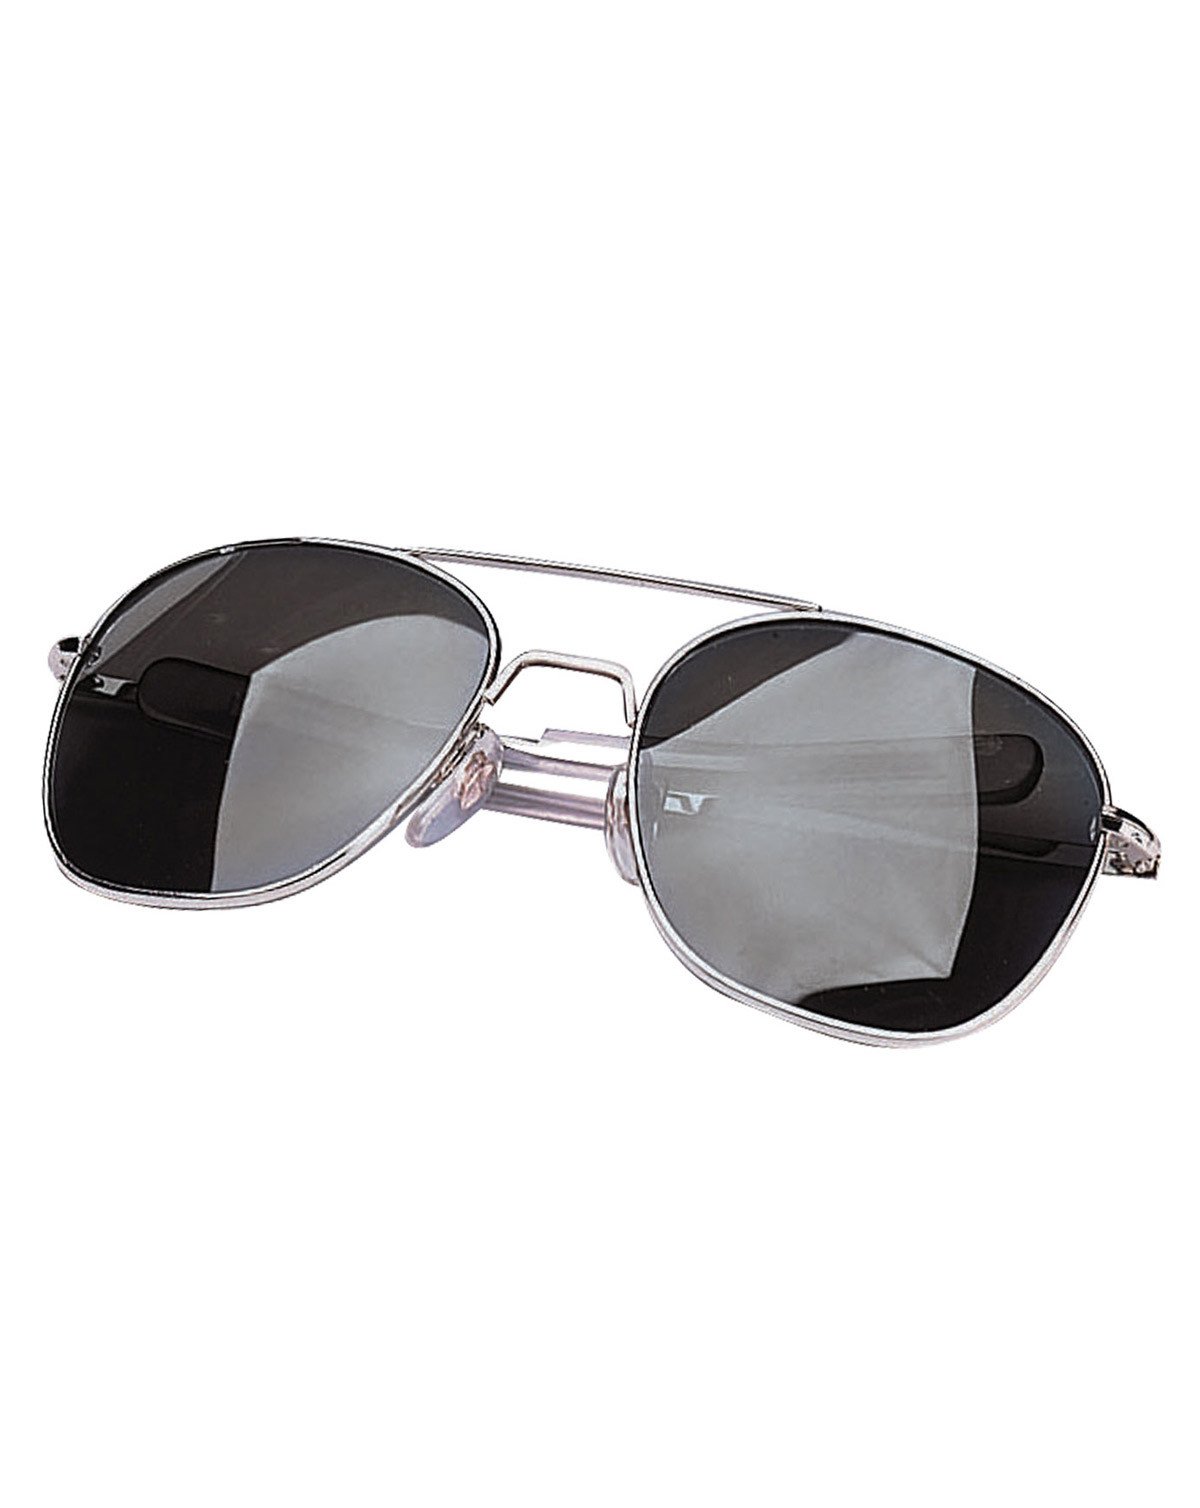 Image of   Rothco Aviator Solbriller (Krom m. Røget Glas, One Size)